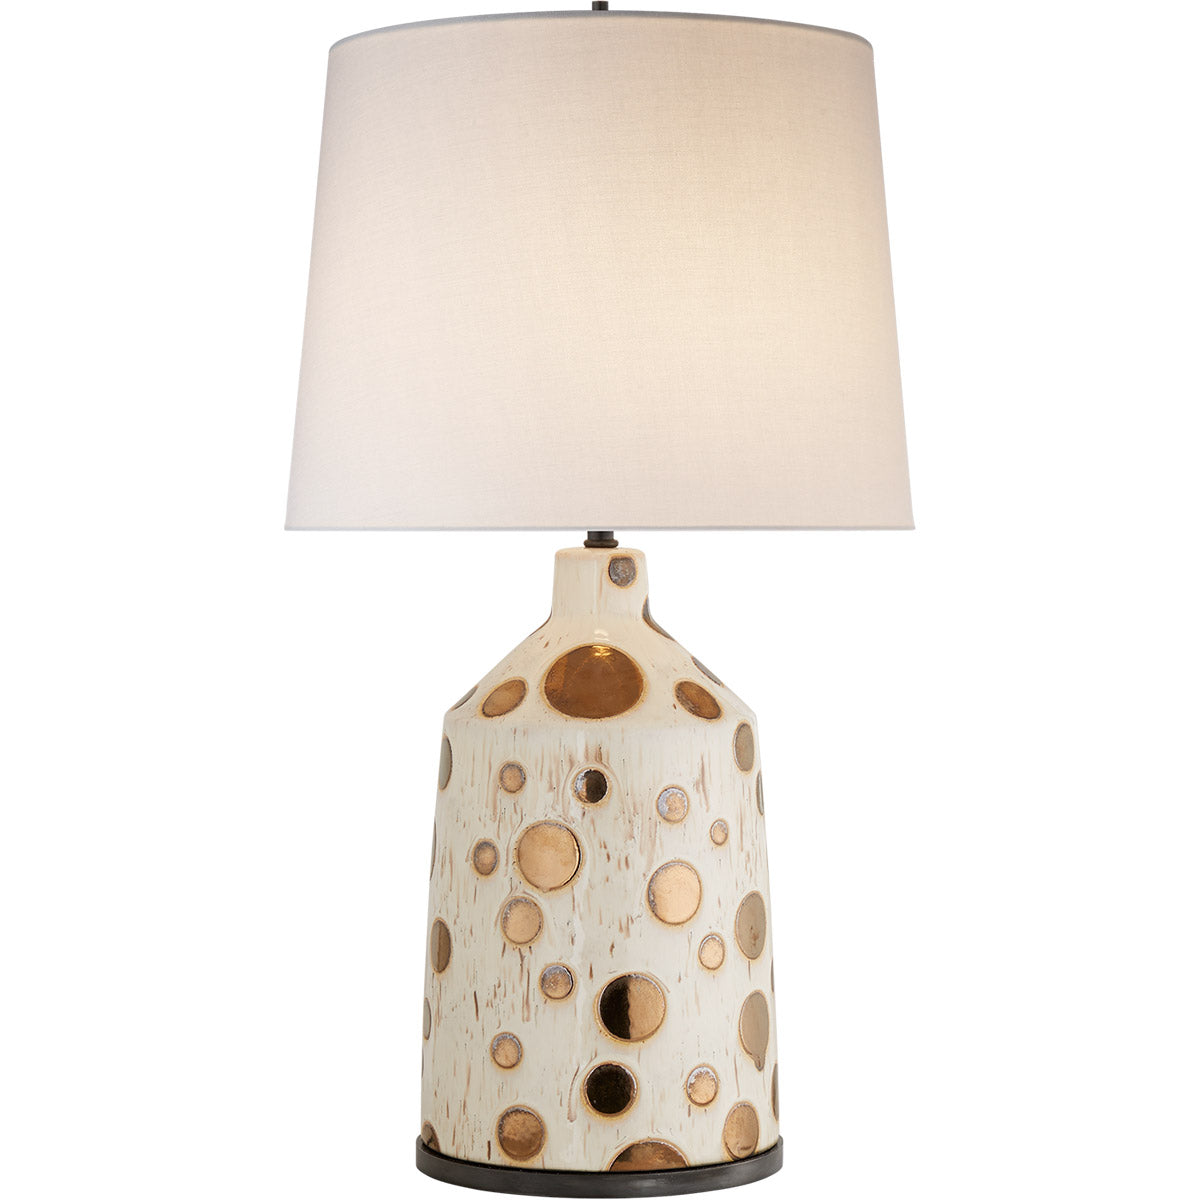 Kelly Wearstler Table Lamp